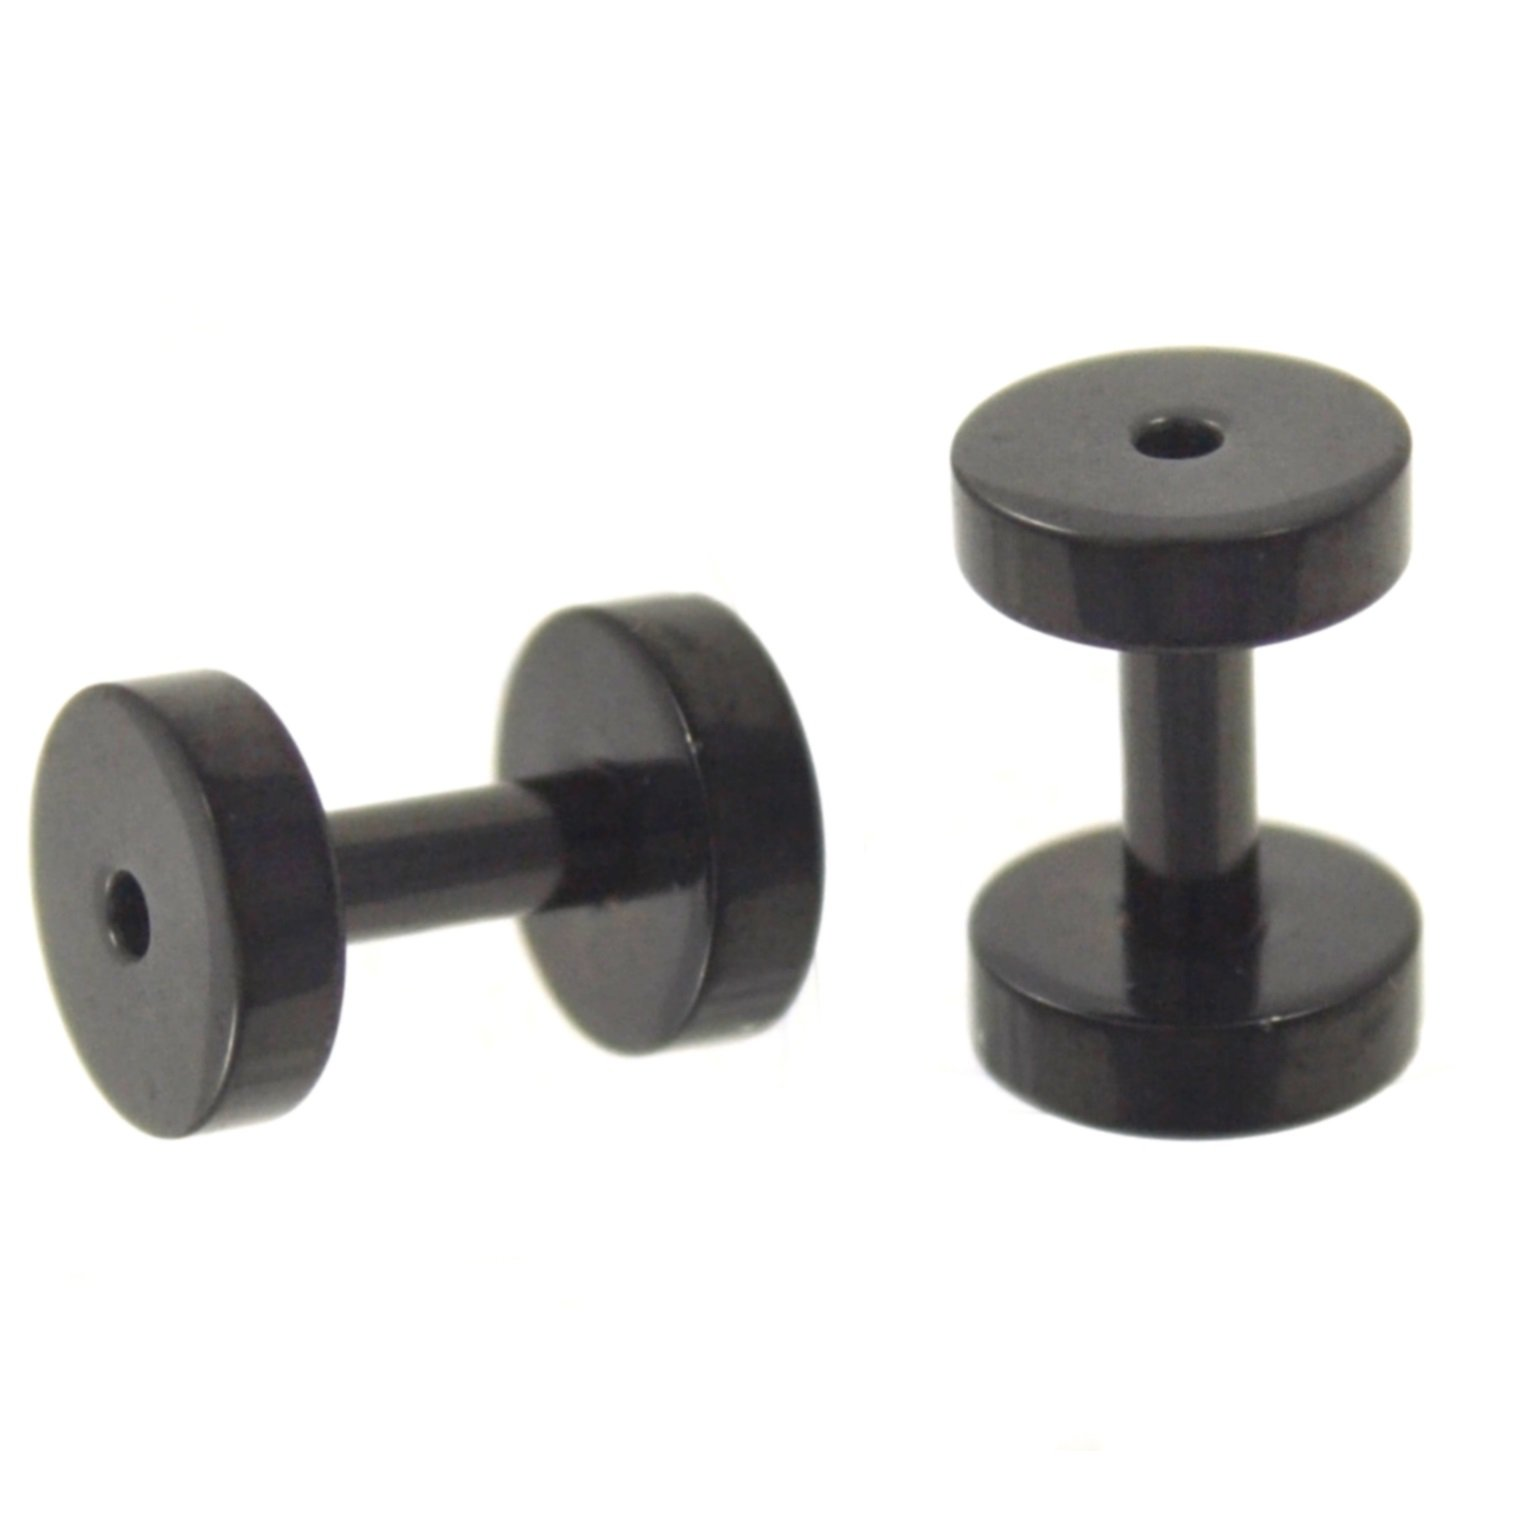 Pair of Solid Black Titanium Plated Ear Tunnels Plugs Screw-On Gauges - 12G 2MM